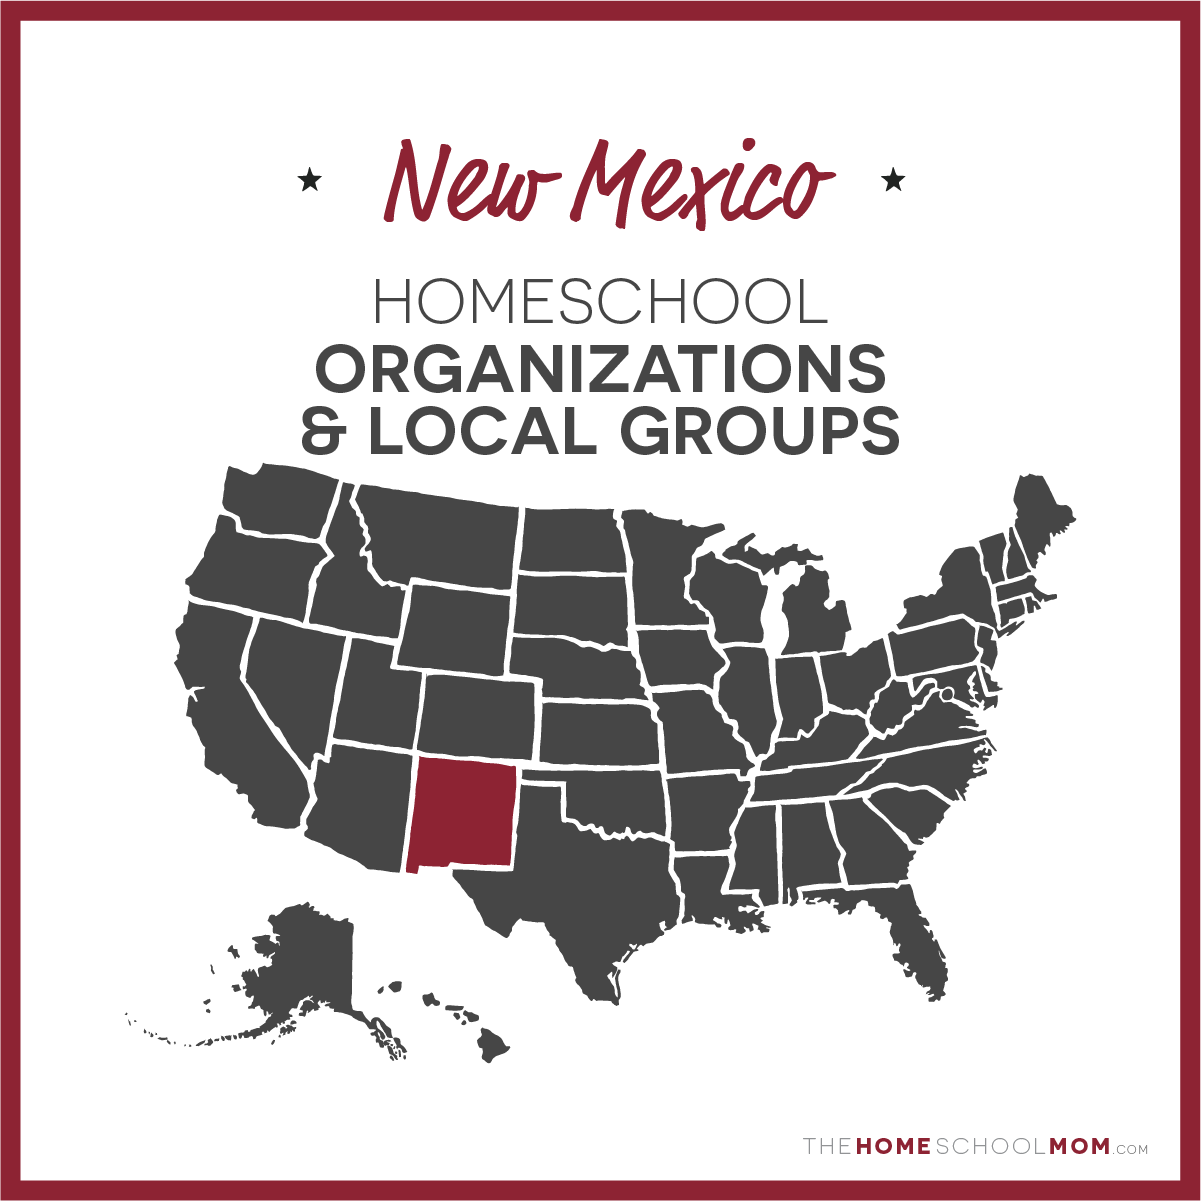 New Mexico Homeschool Organizations and Local Groups - TheHomeSchoolMom.com